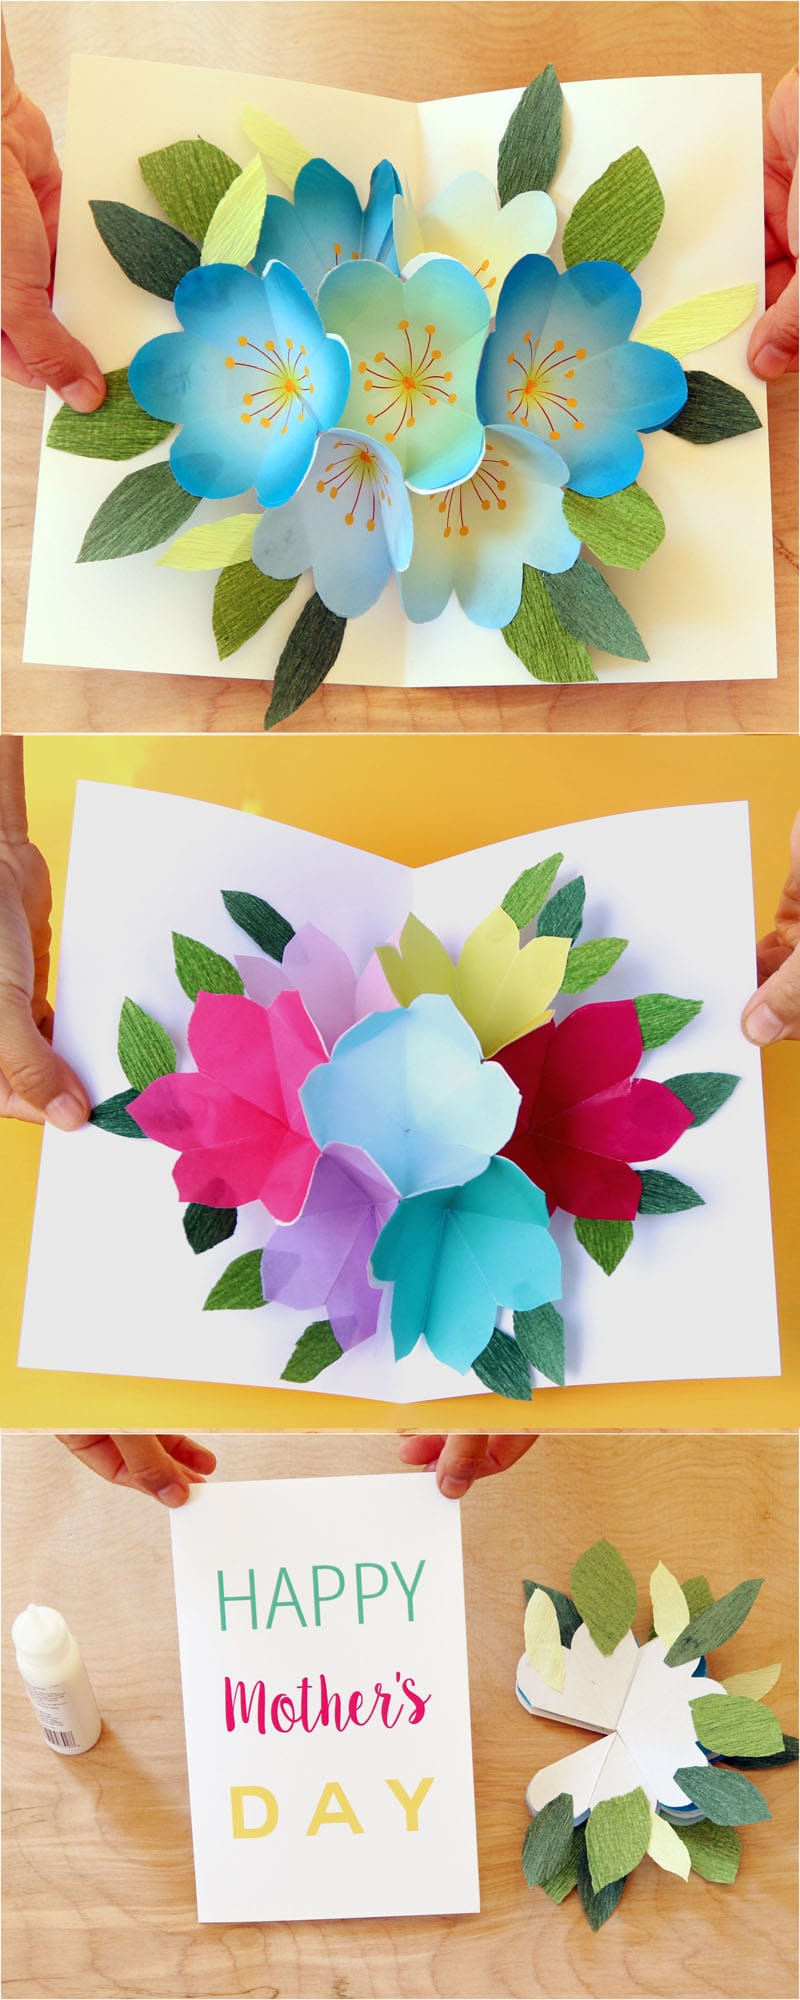 Pop Up Flowers Diy Printable Mother's Day Card - A Piece Of Rainbow - Free Printable Mothers Day Cards No Download